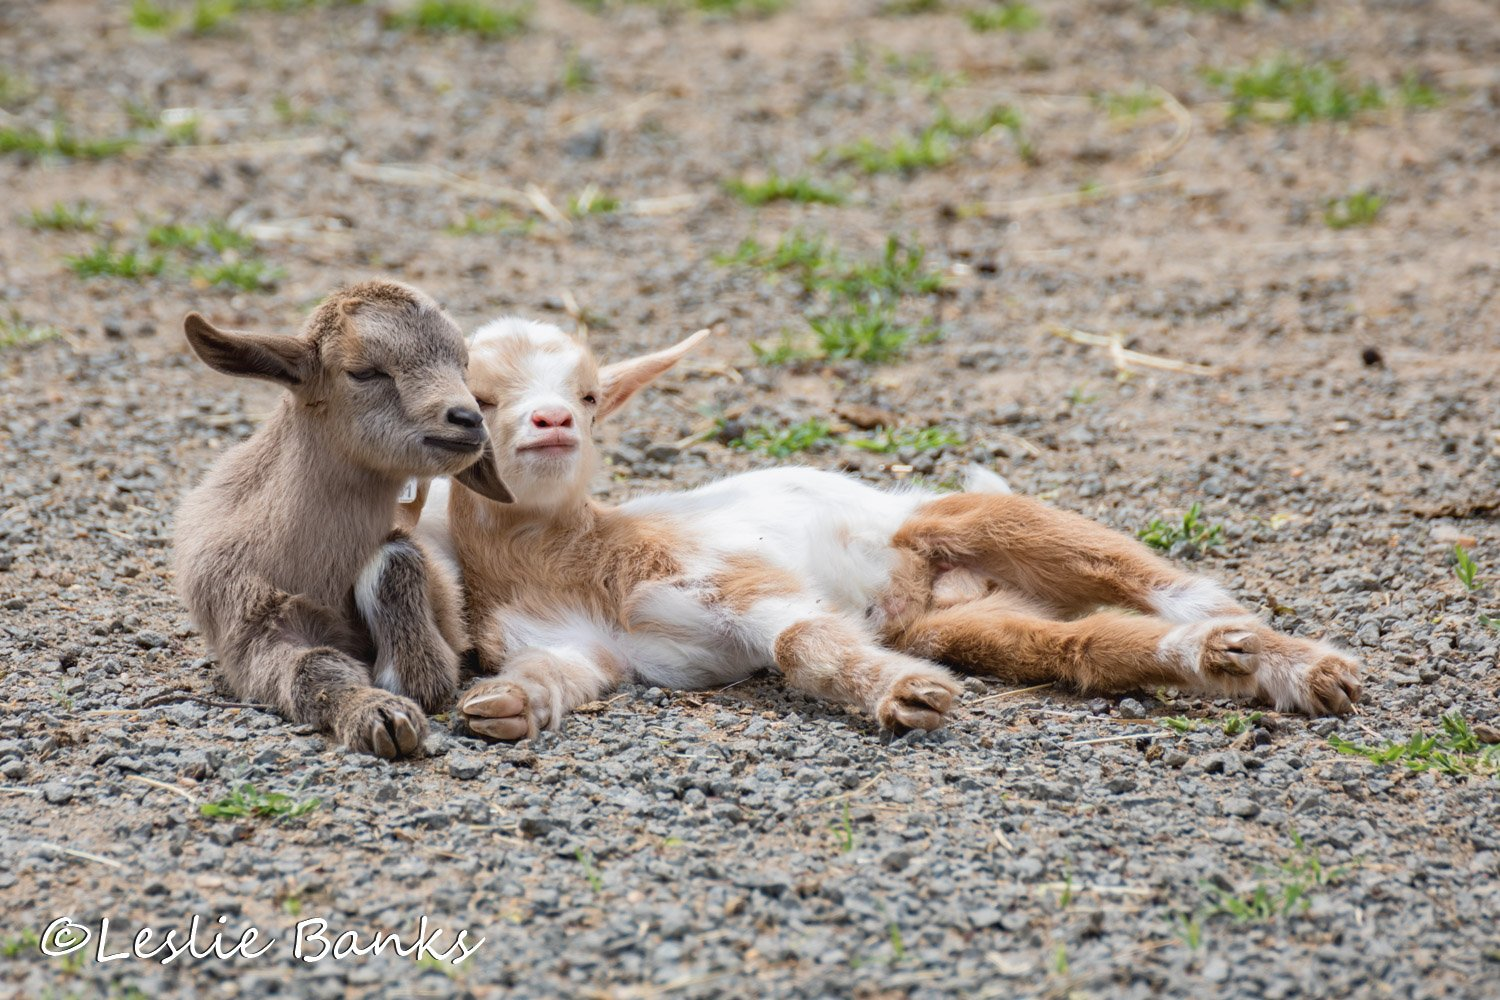 Adorable baby goats, or kids